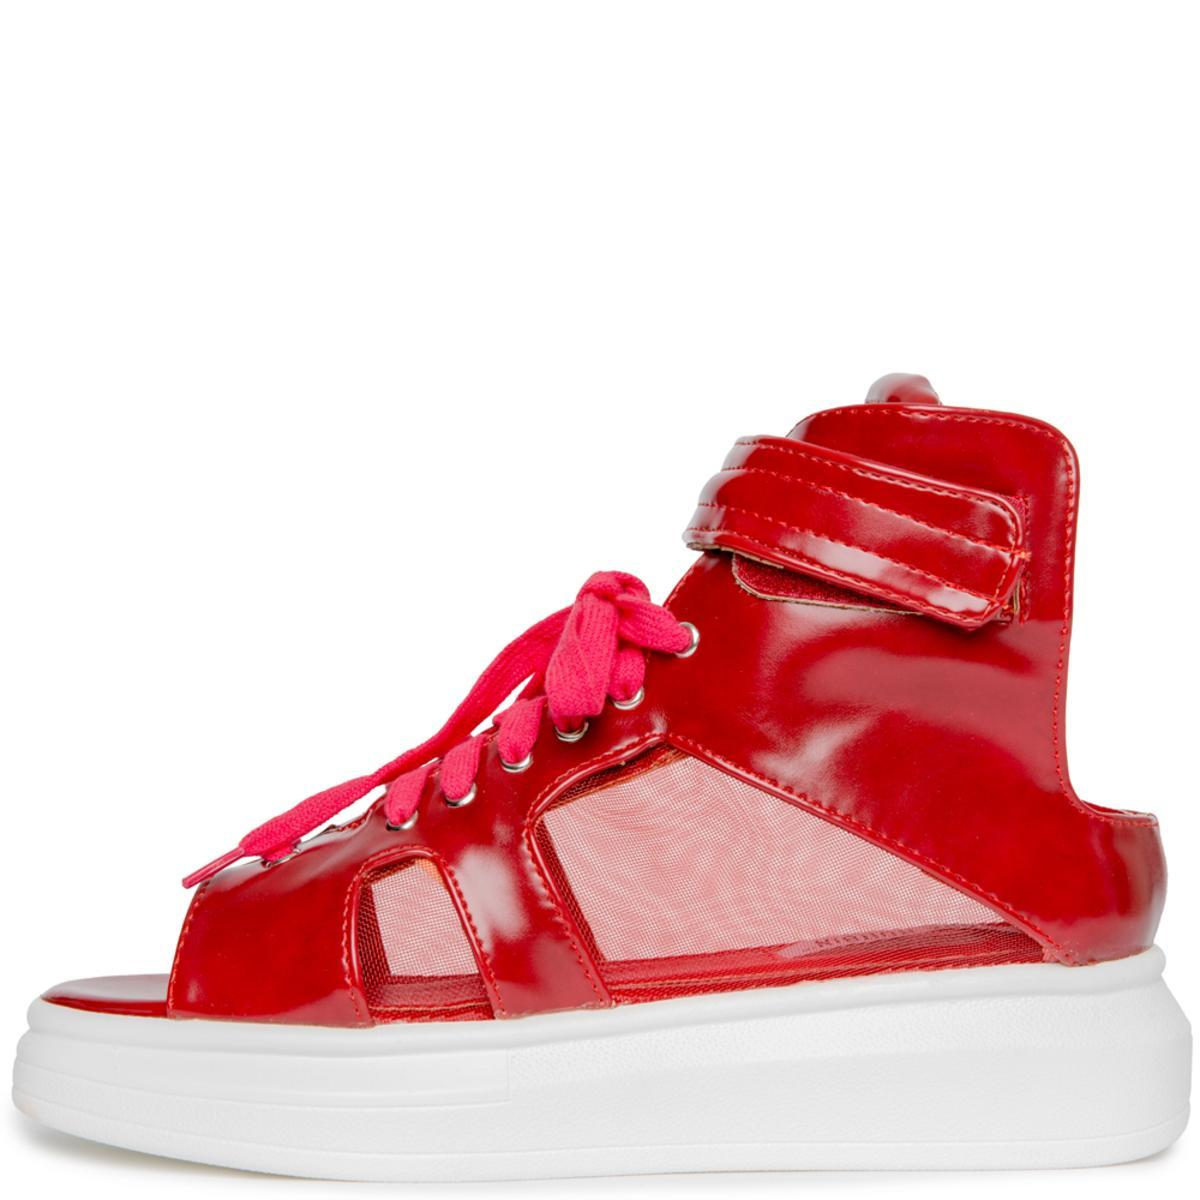 Cape Robbin Forever-7 Women's Red Sneakers